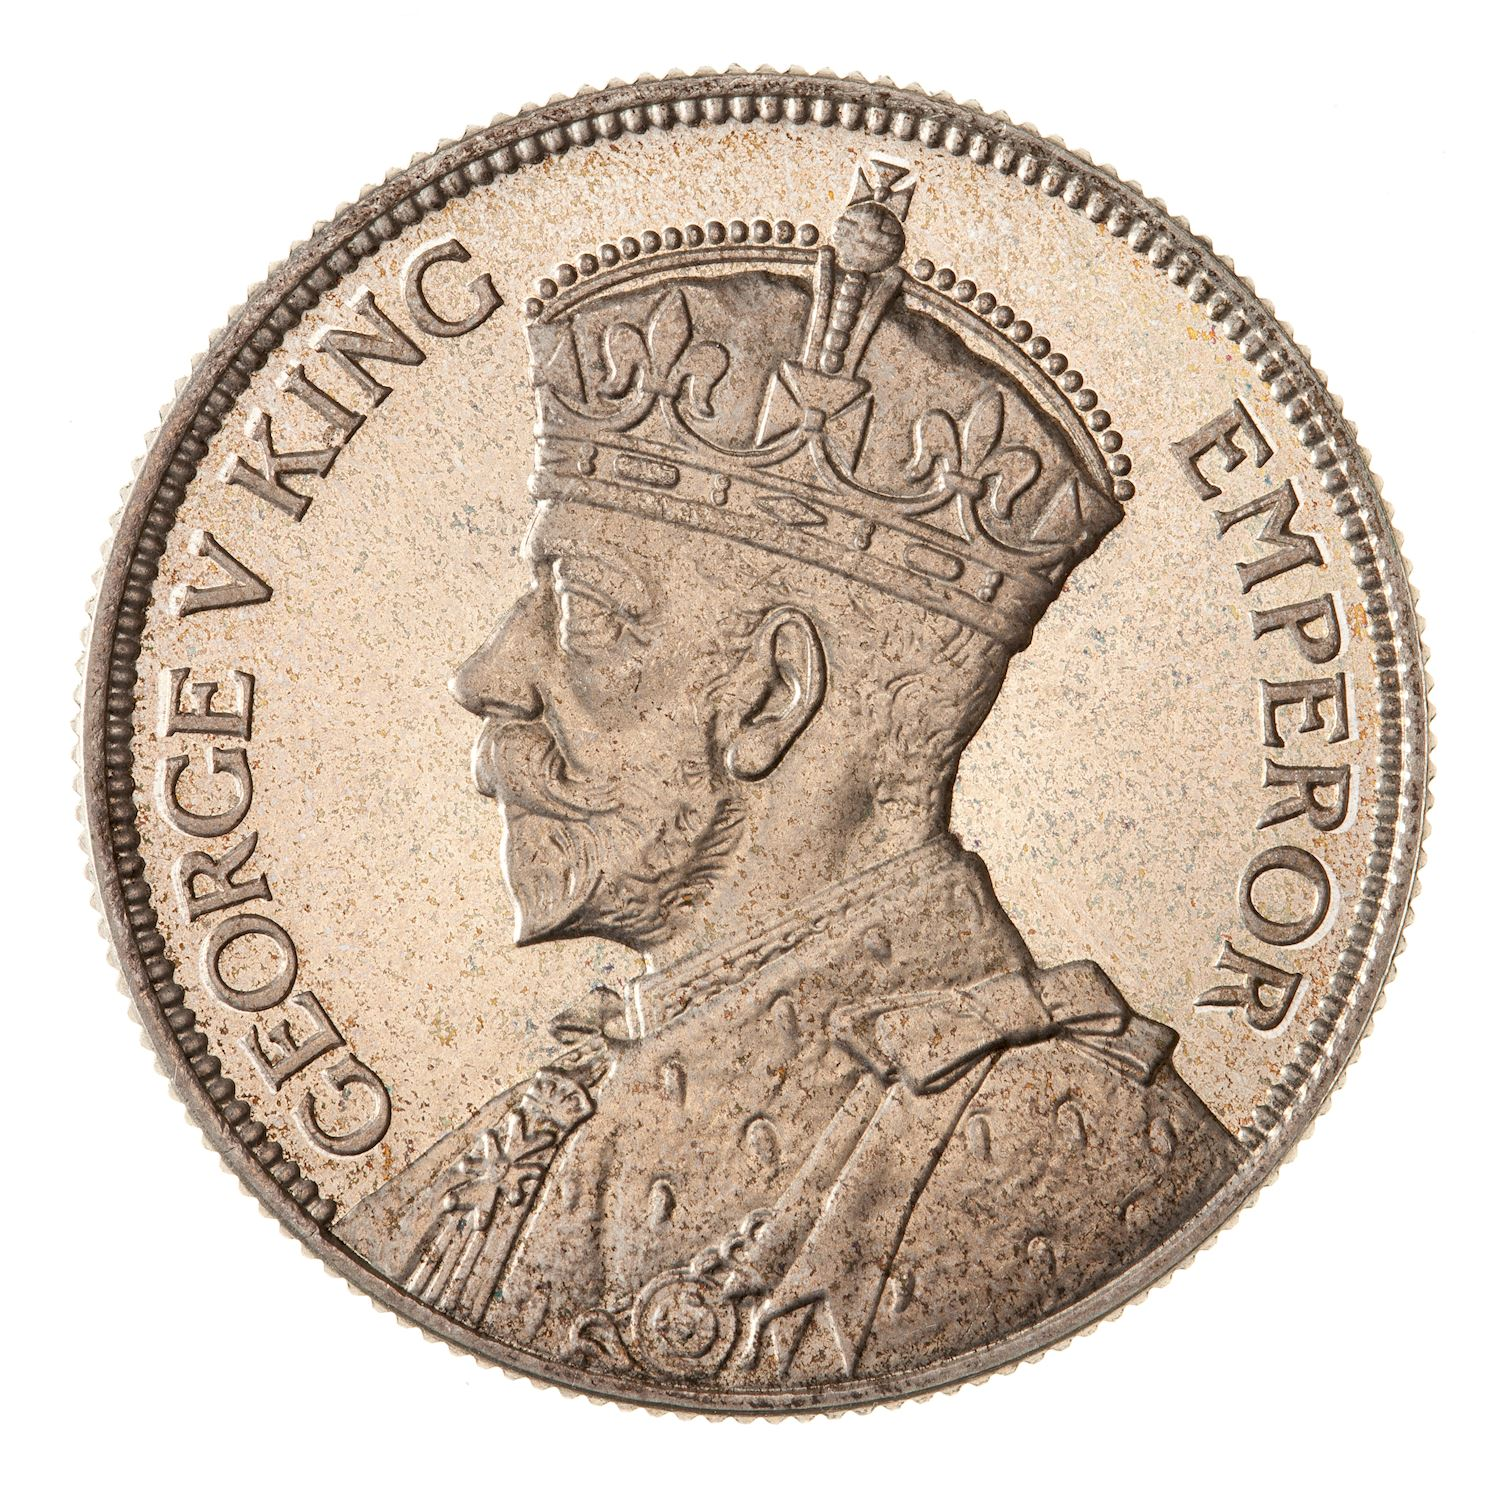 Florin: Photo Proof Coin - Florin (2 Shillings), New Zealand, 1933